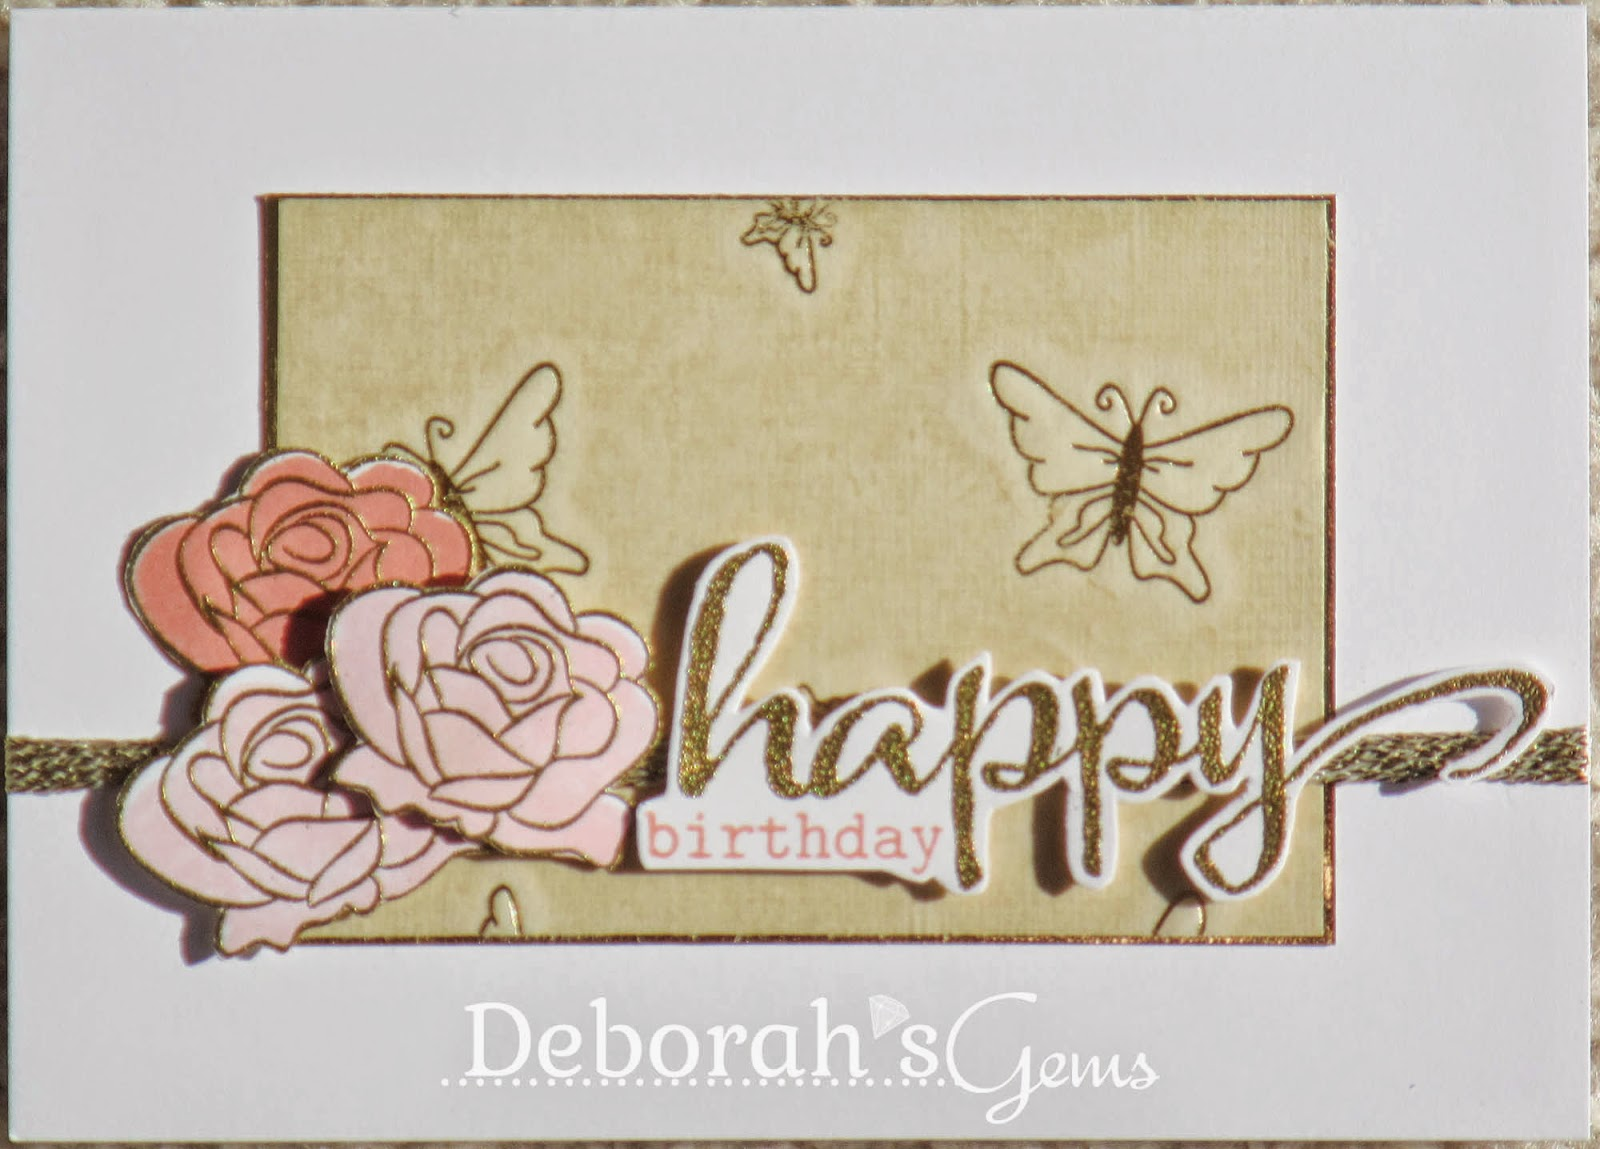 Happy Birthday Mum detail - photo by Deborah Frings - Deborah's Gems